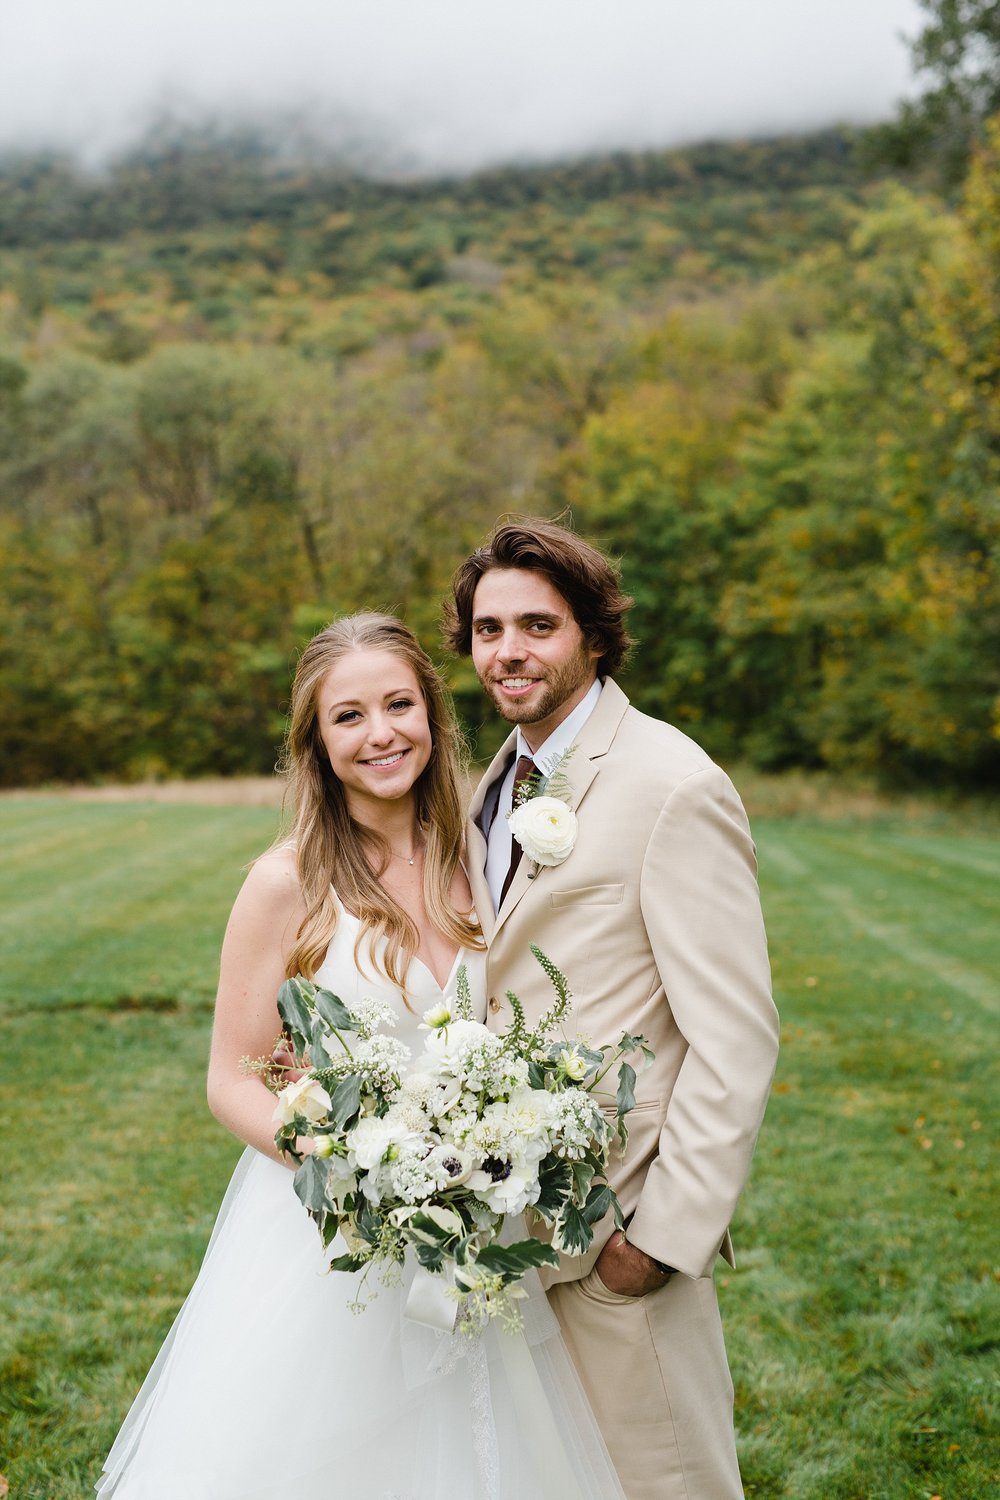 STEPHANIE & DYLAN - BLOOM MEADOWS BERKSHIRES